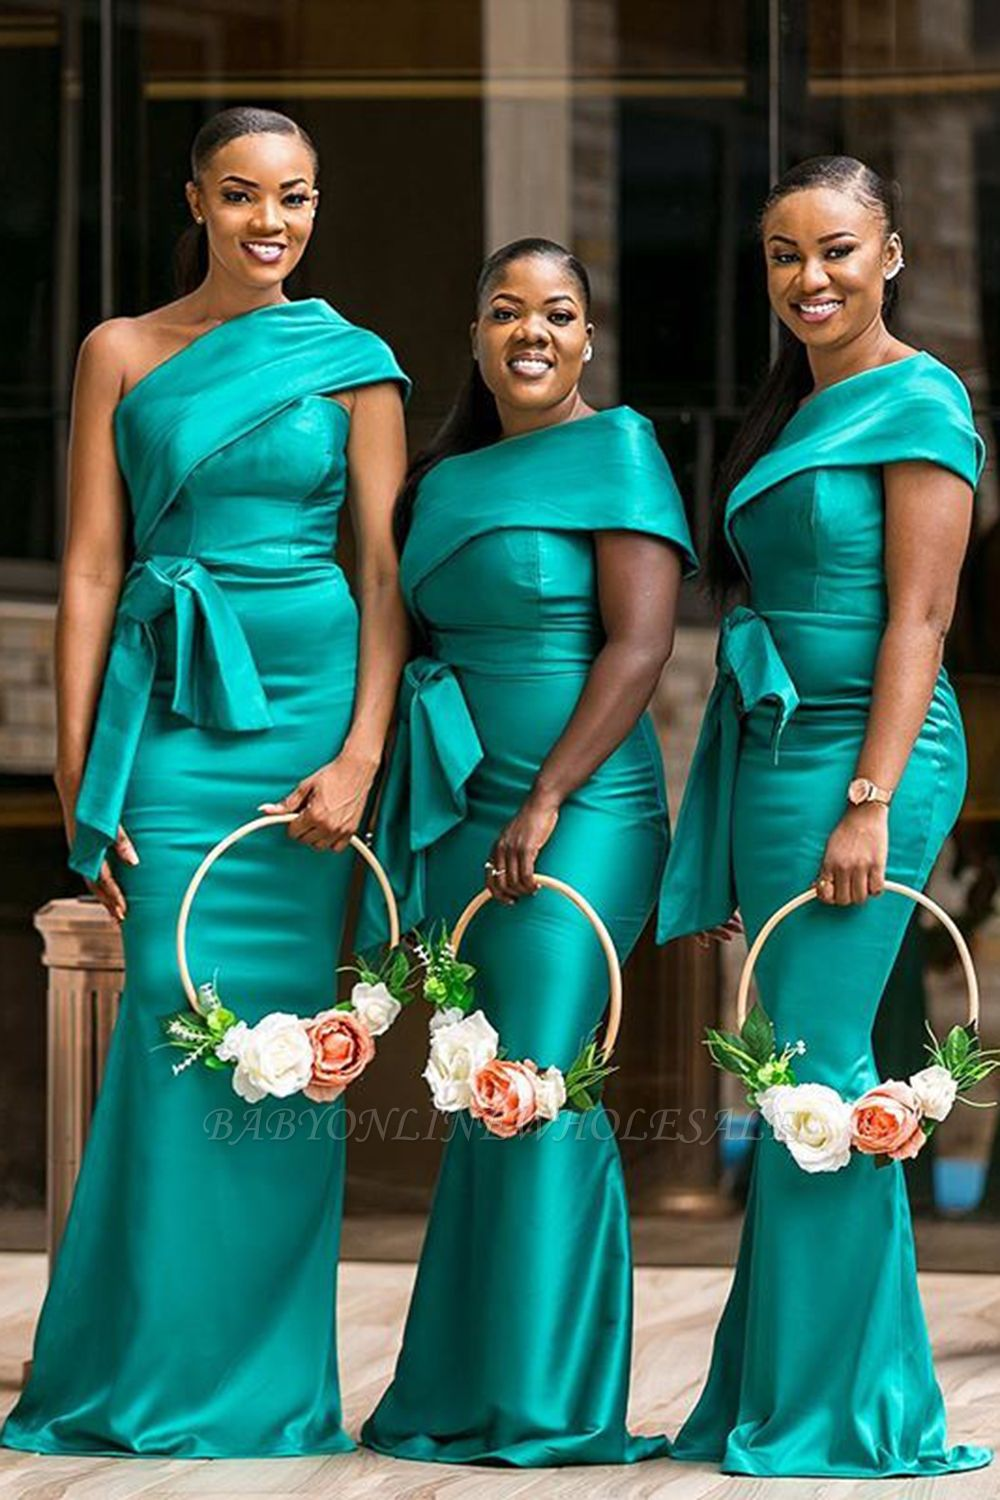 Elegant One-Shoulder Green Sweep Train Bridesmaid Dress With Belt Decoration | Green Long Length Gowns